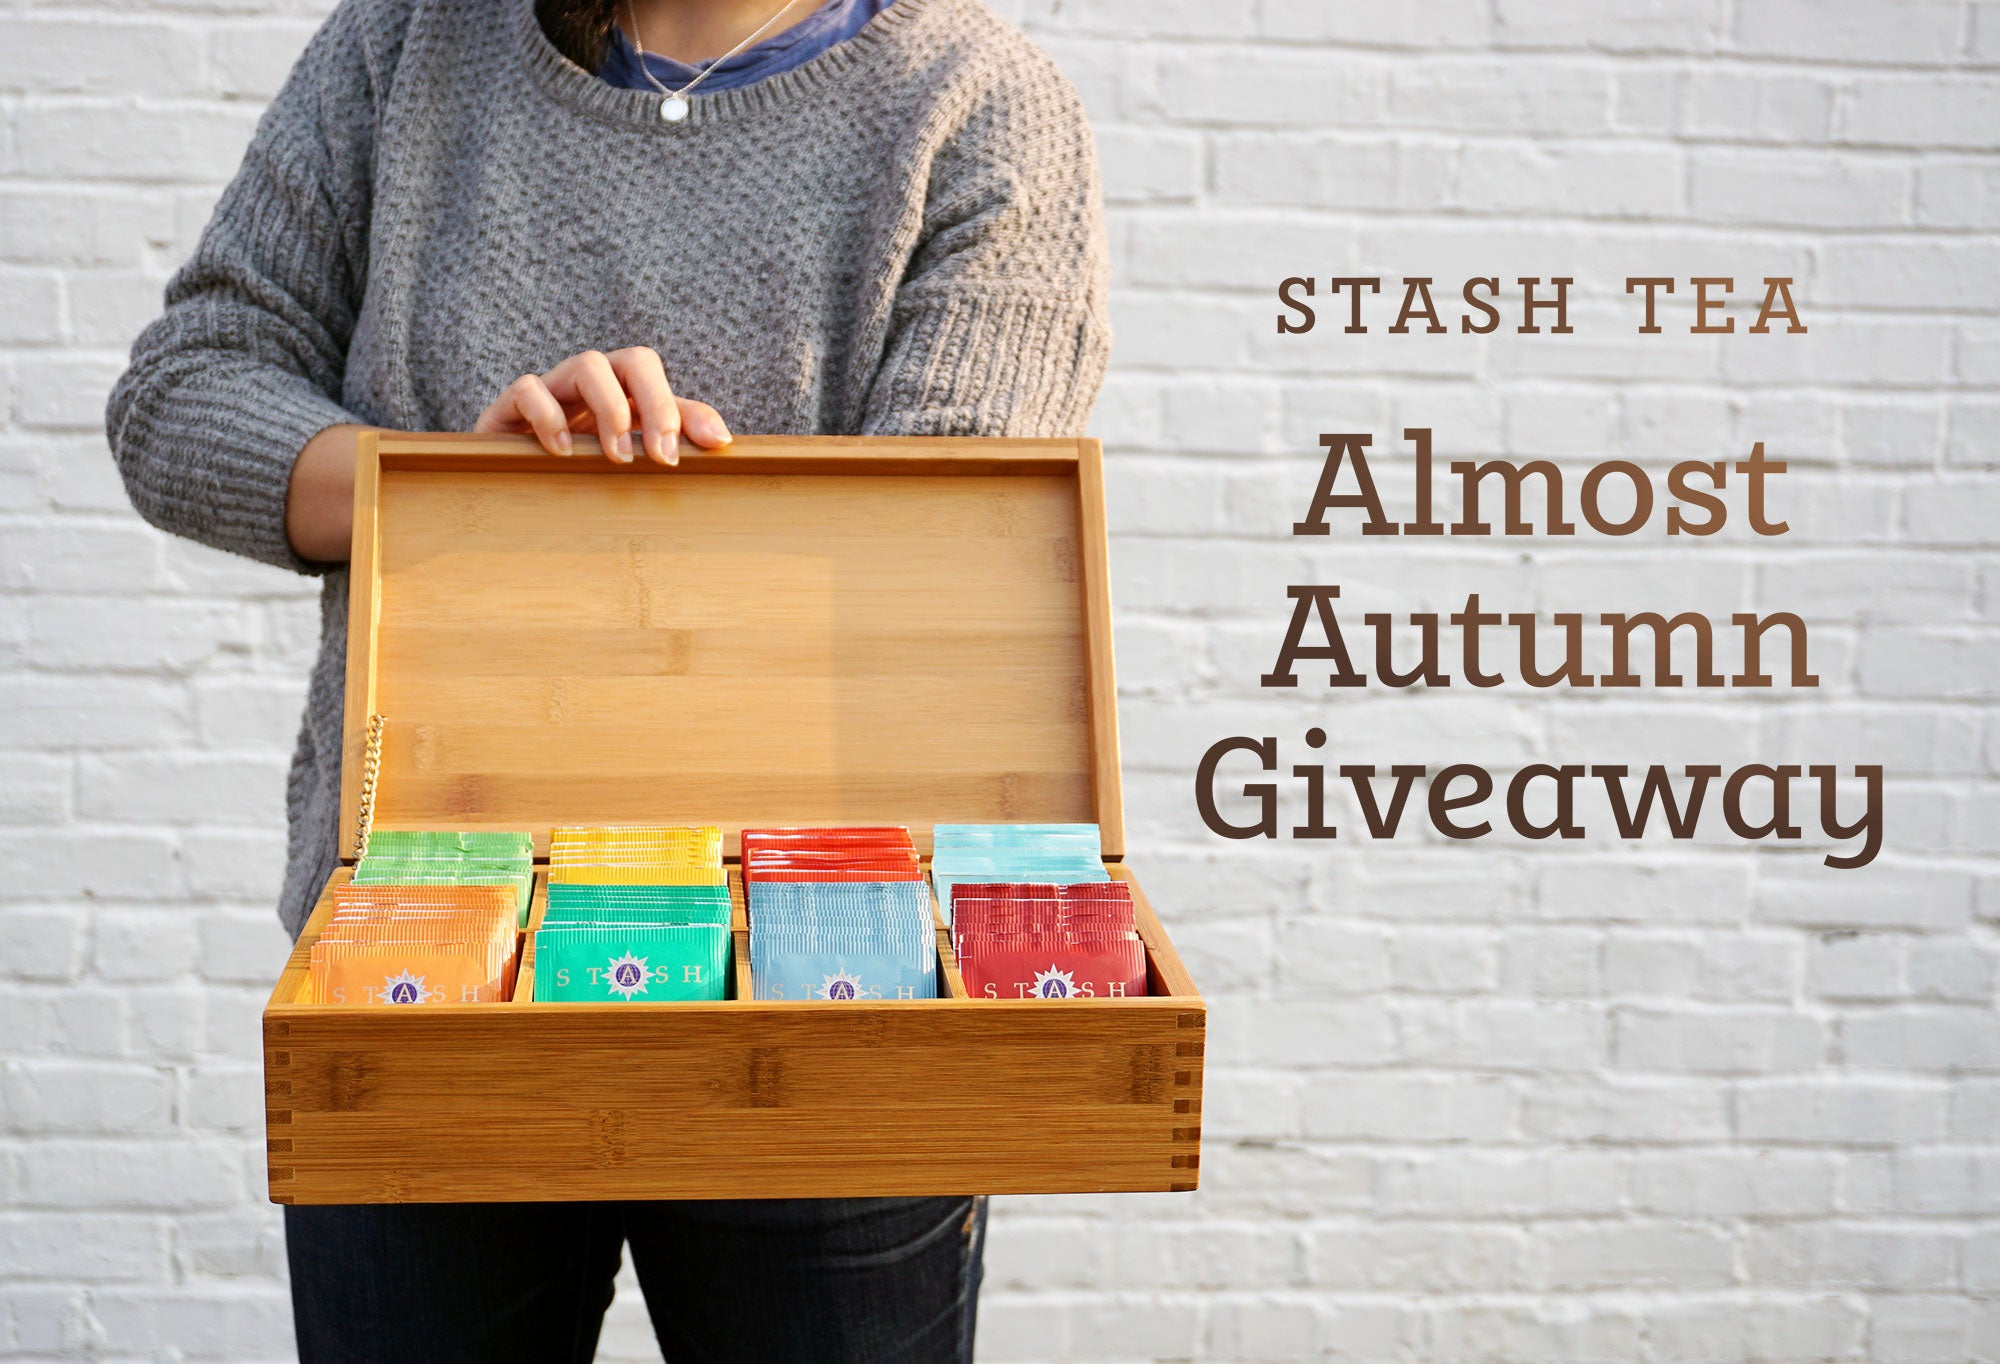 Stash Tea Almost Autumn Giveaway